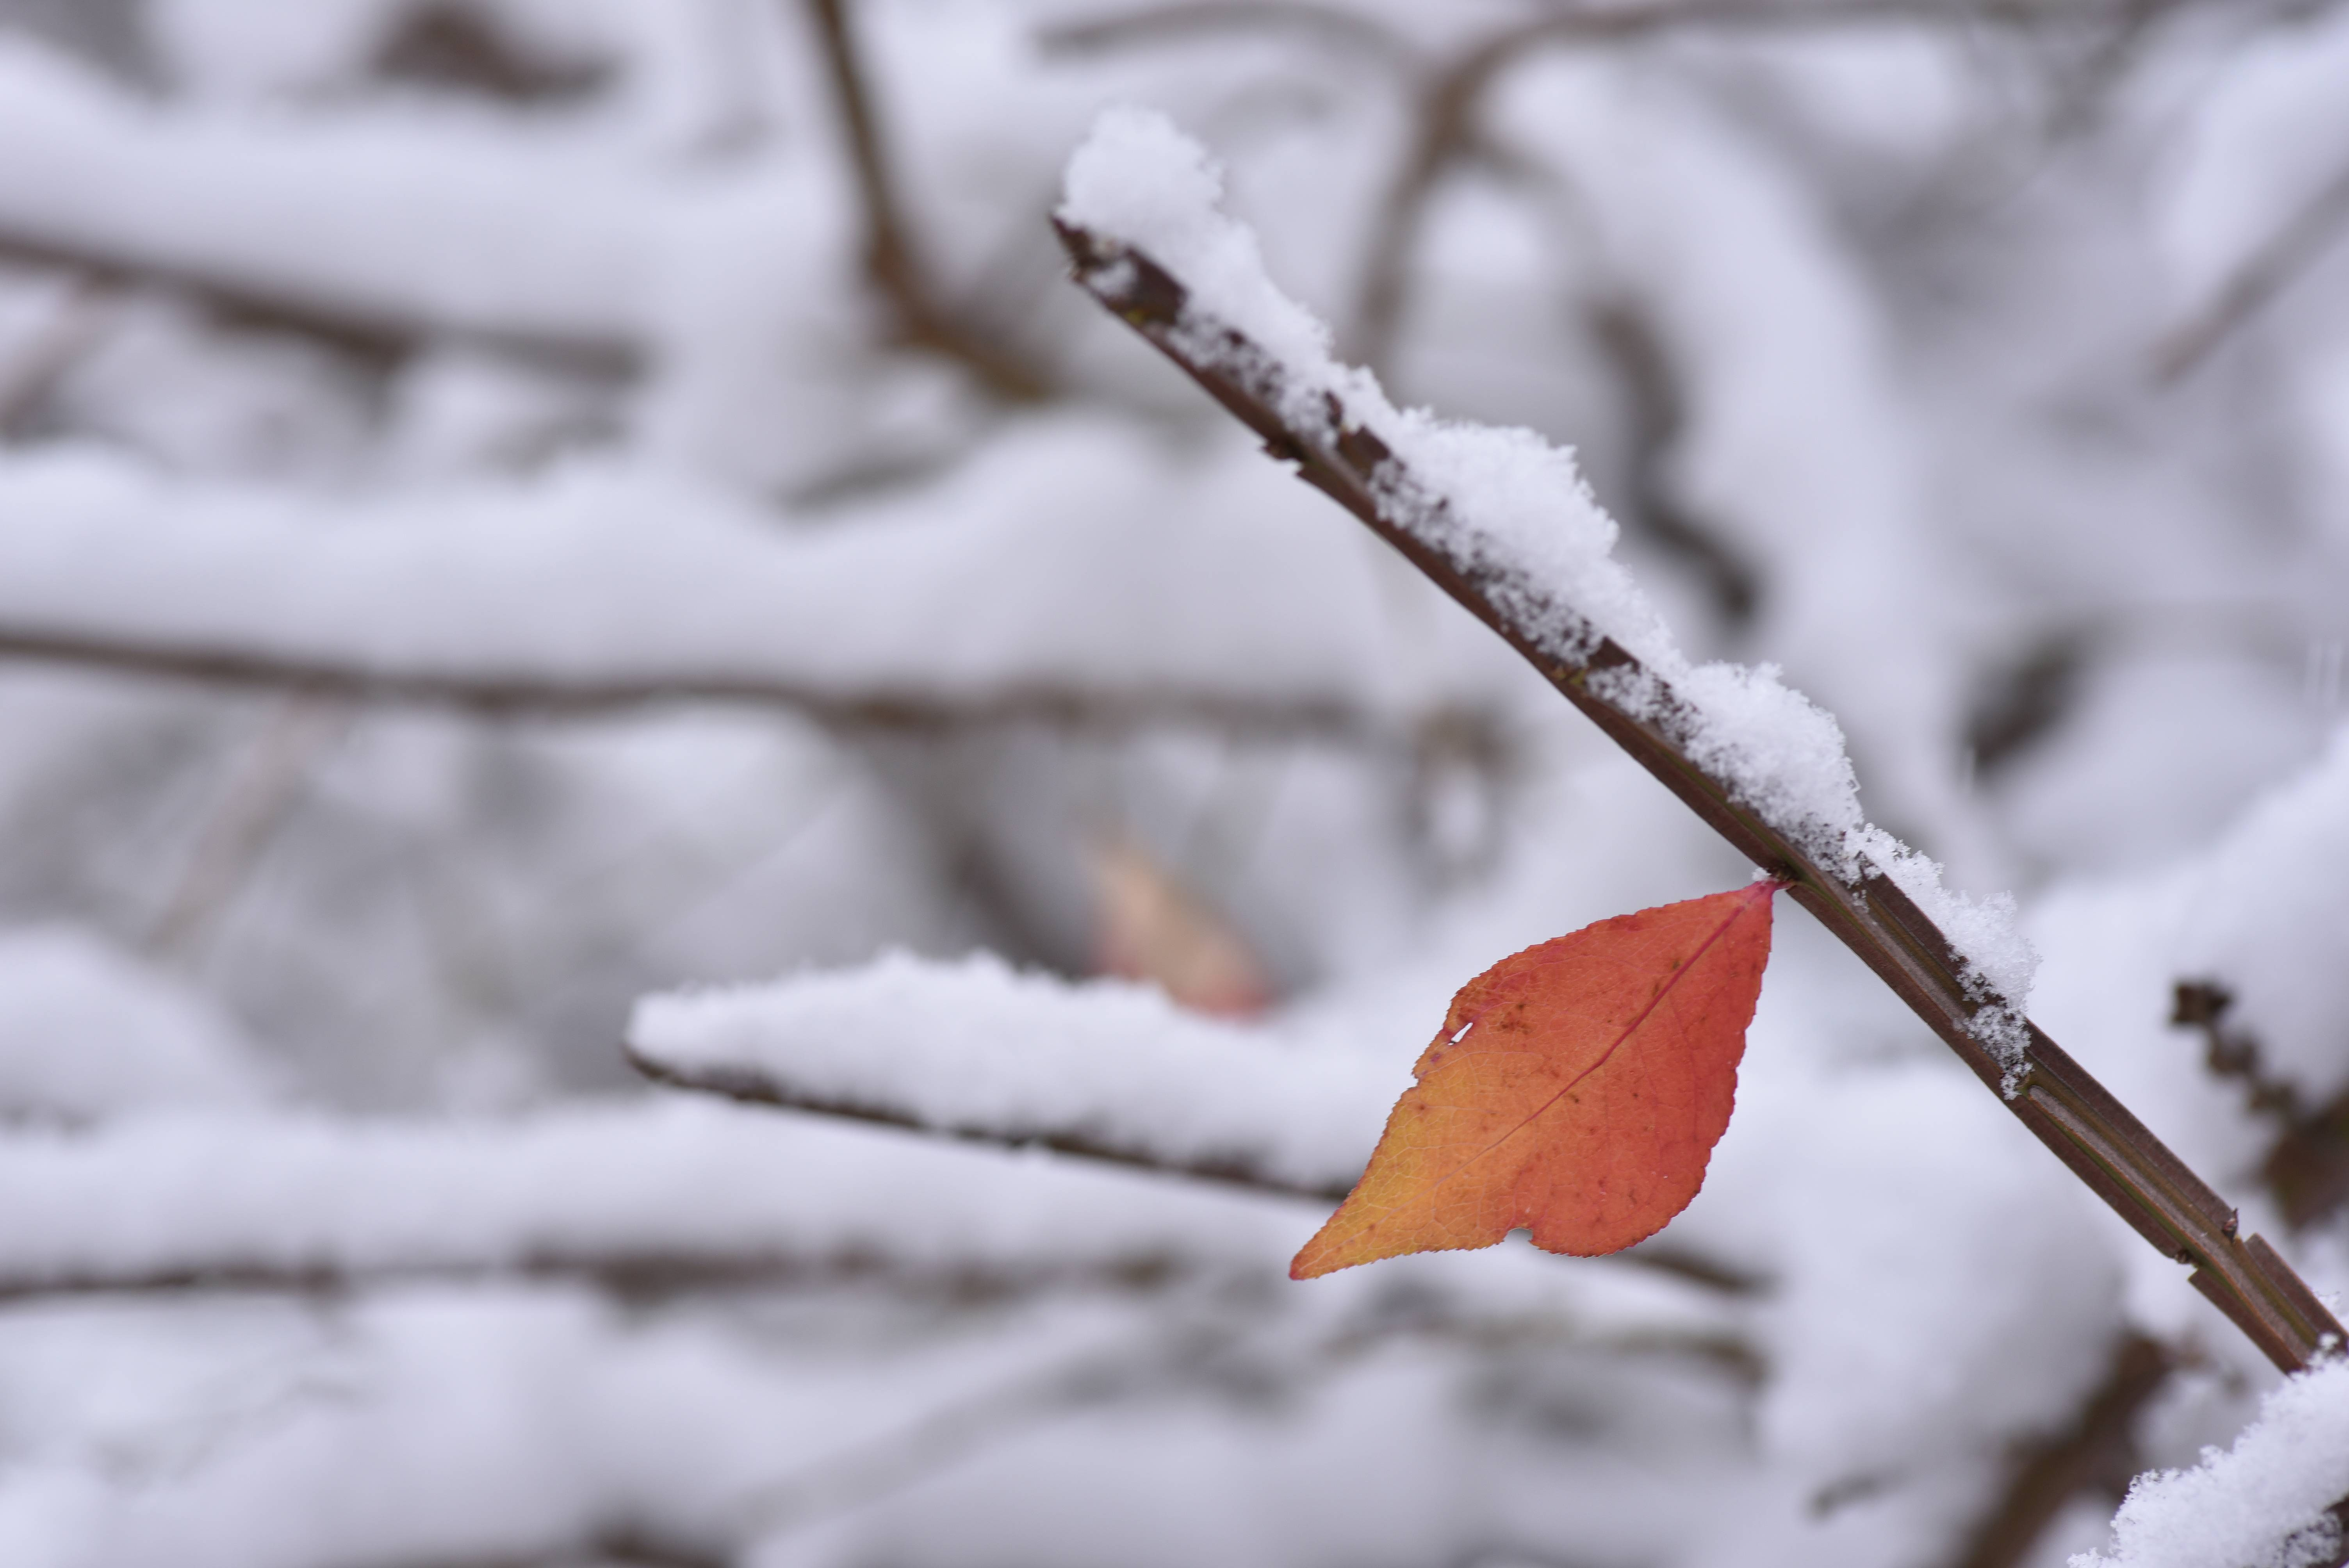 An early snow blanketed colorful leaves on bushes and trees in Geneva Friday morning but left area roads mostly wet.